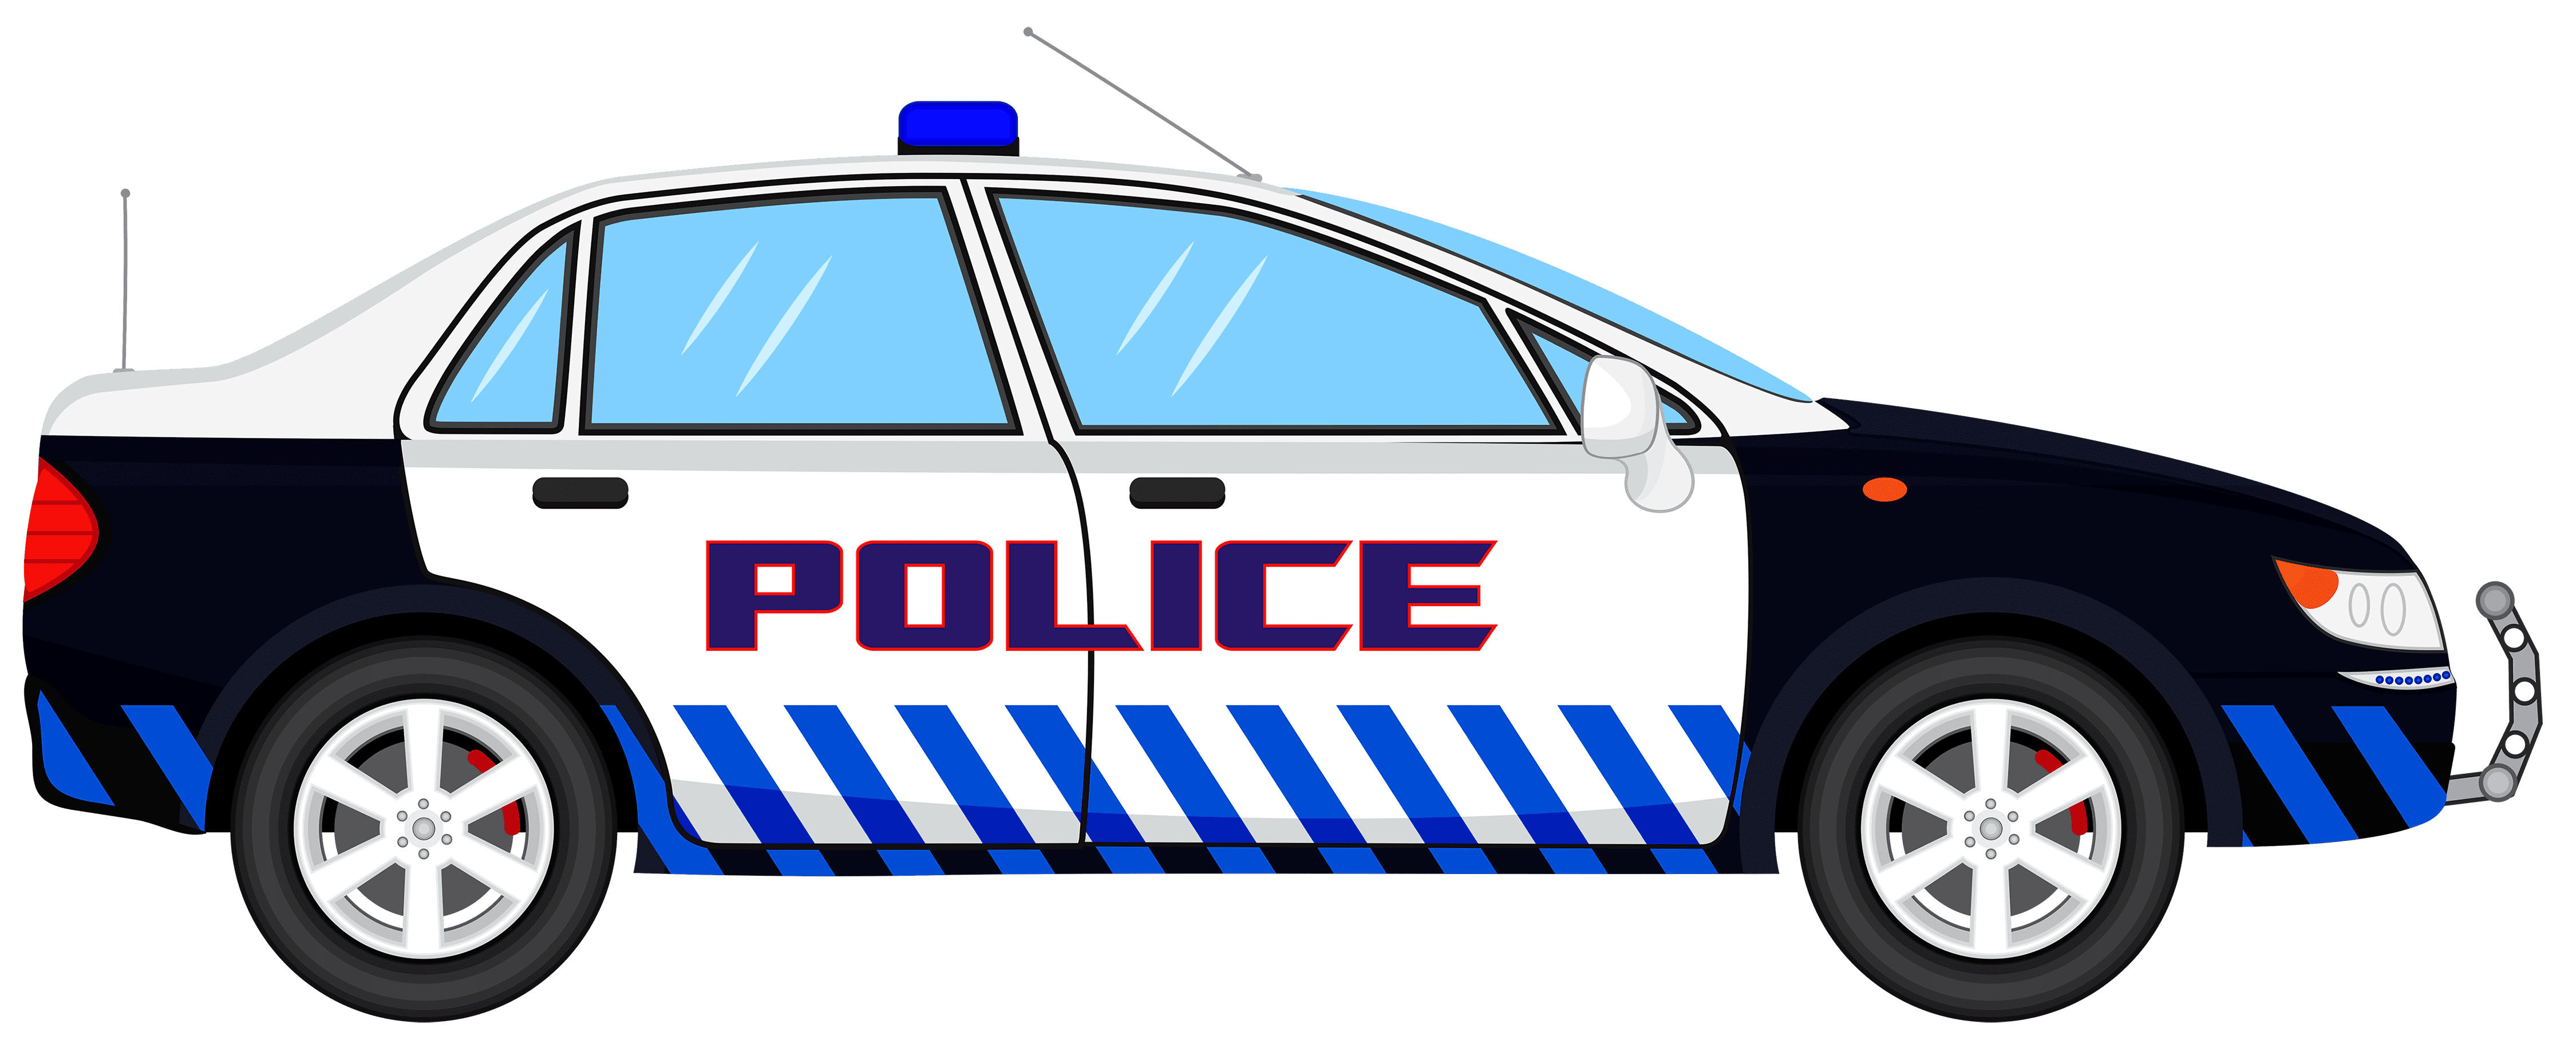 Policeman car clipart clip art police car png - Free PNG Images | TOPpng clip art